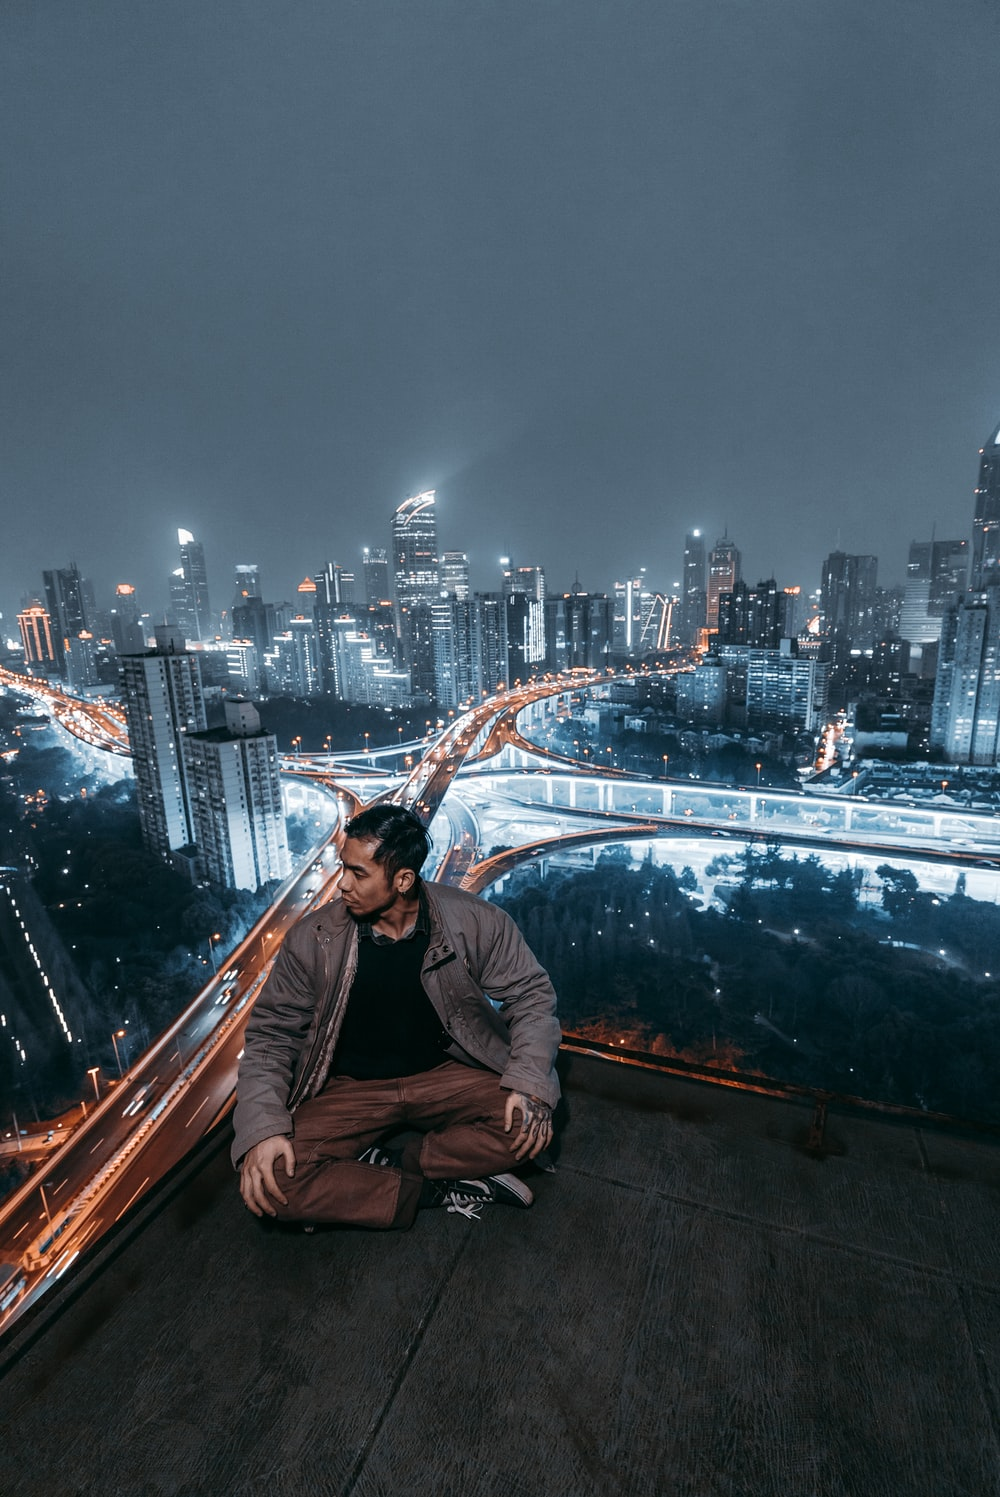 man sitting on rooftop looking his right side during night time